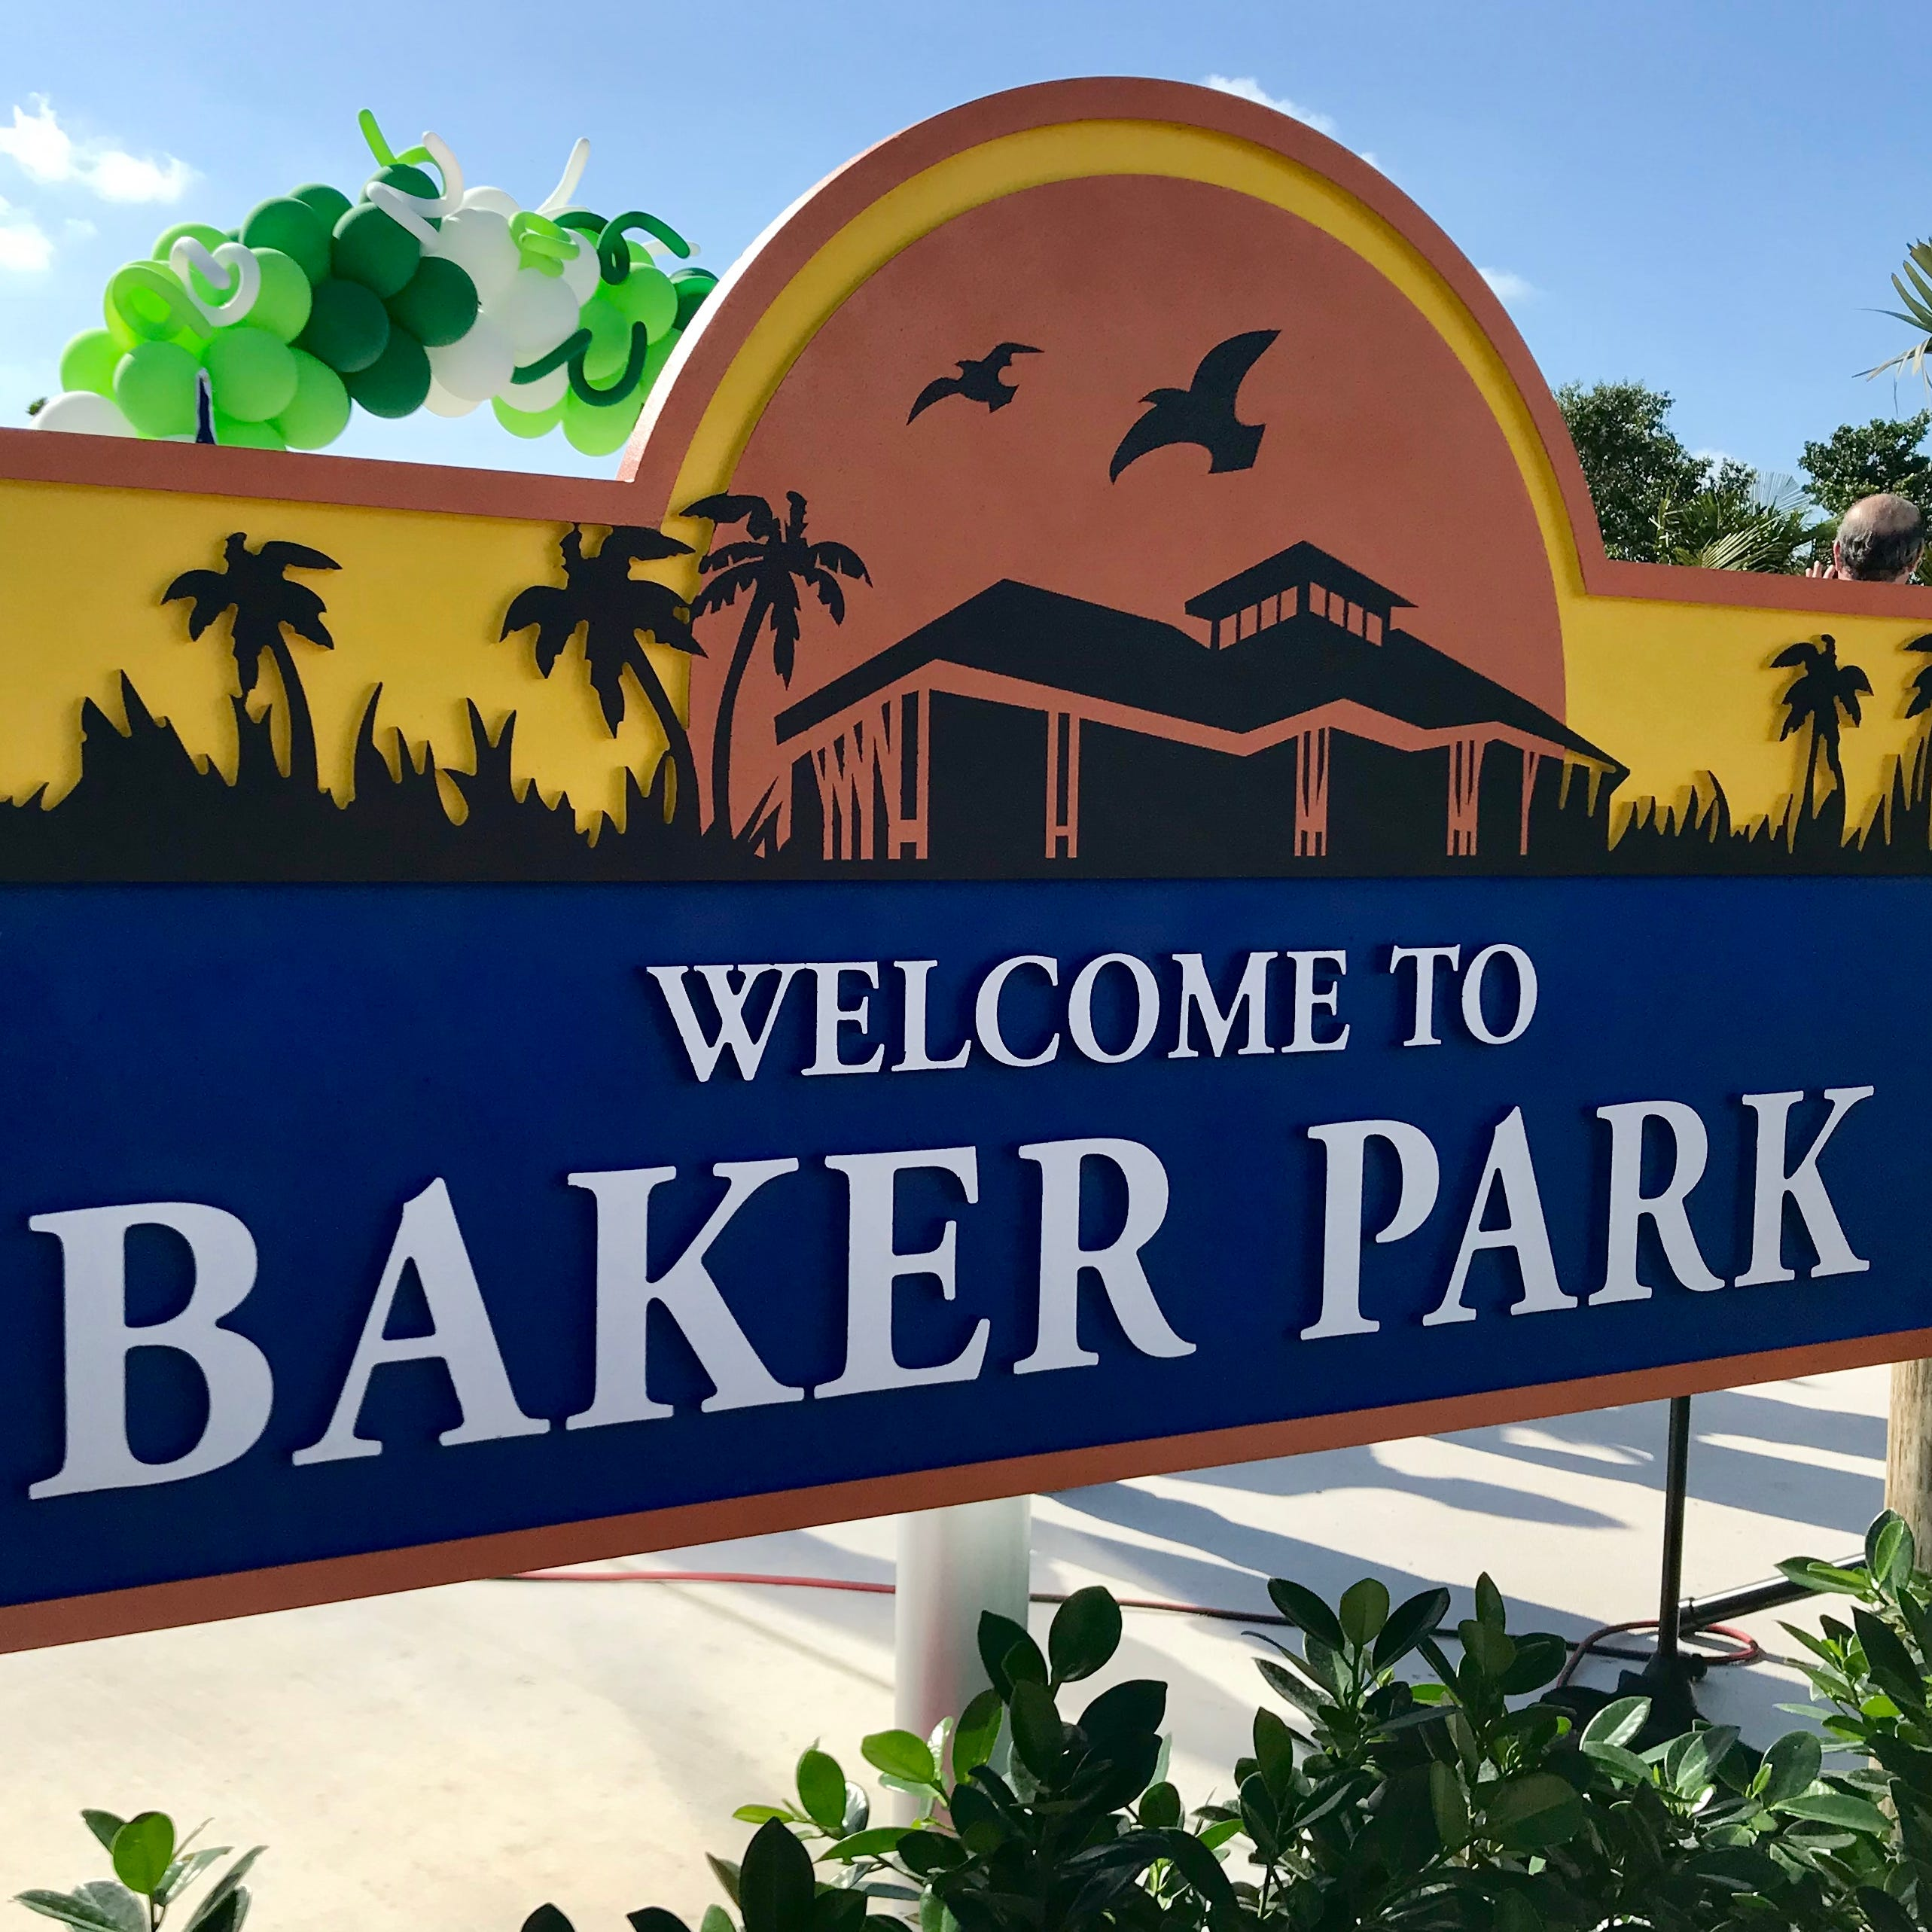 City opens first portion of Baker Park; second half to open in October